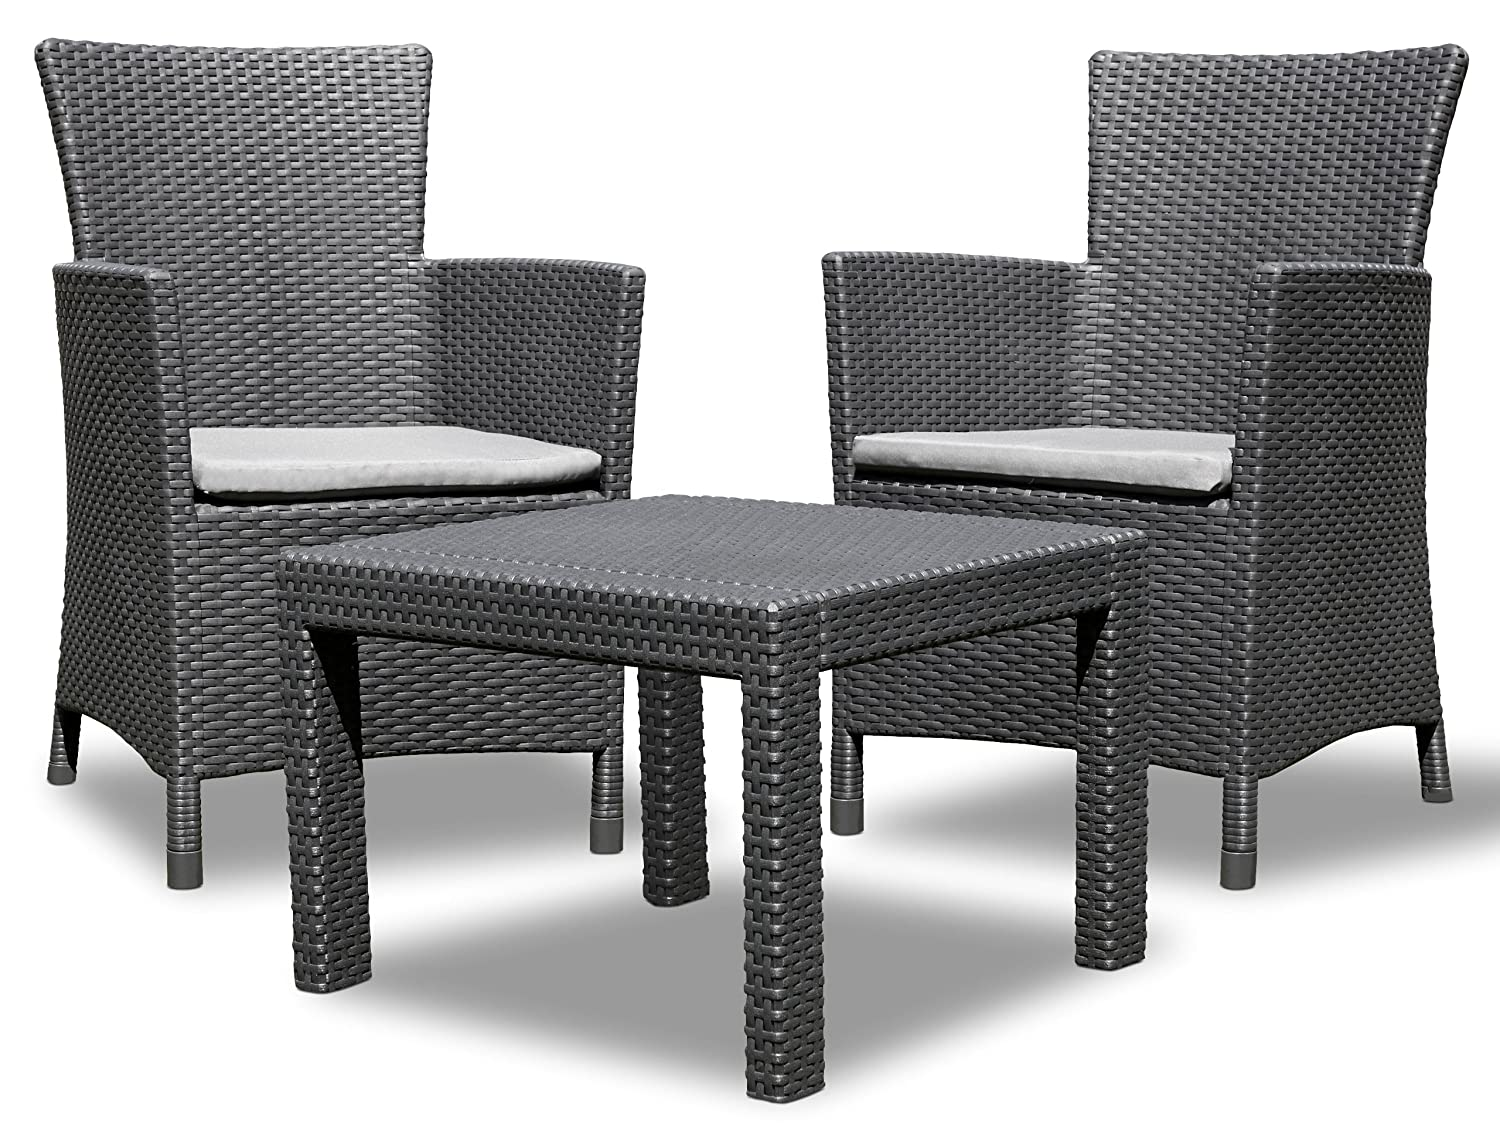 2er set allibert daytona sonnenliege kunststoff gartenm bel rattanoptik graphit exklusiv bezug. Black Bedroom Furniture Sets. Home Design Ideas